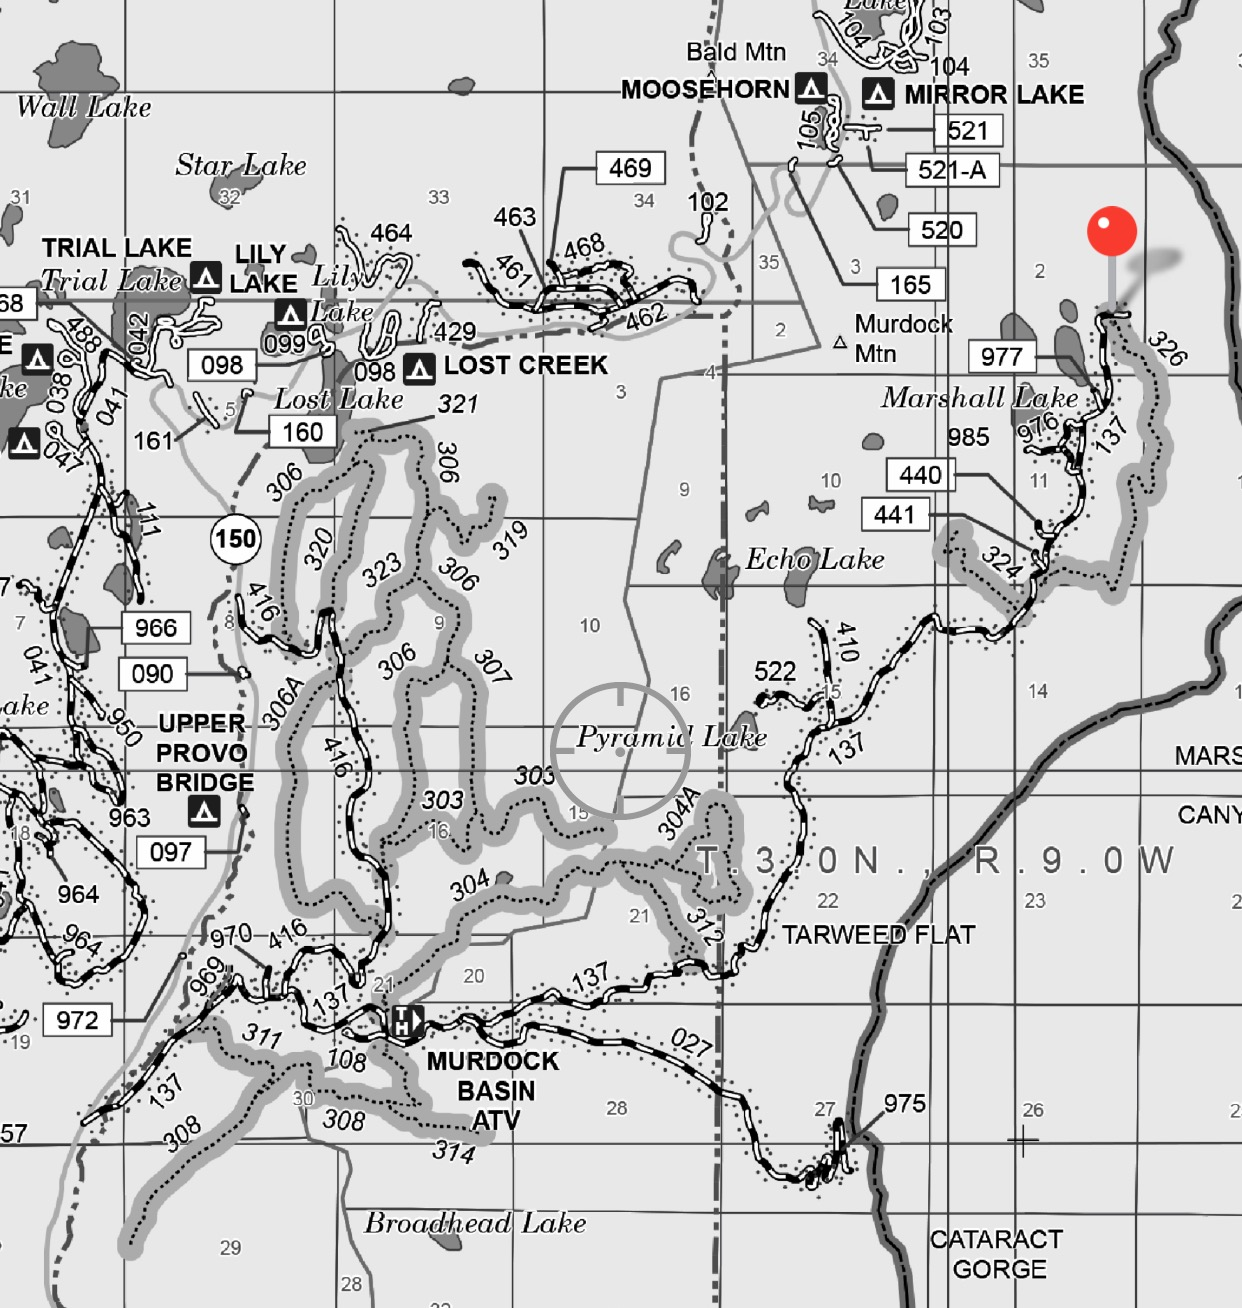 Areas You Can Atv In Southern California Map.Murdock Basin Atv Trails Uinta Mountains The Trek Planner